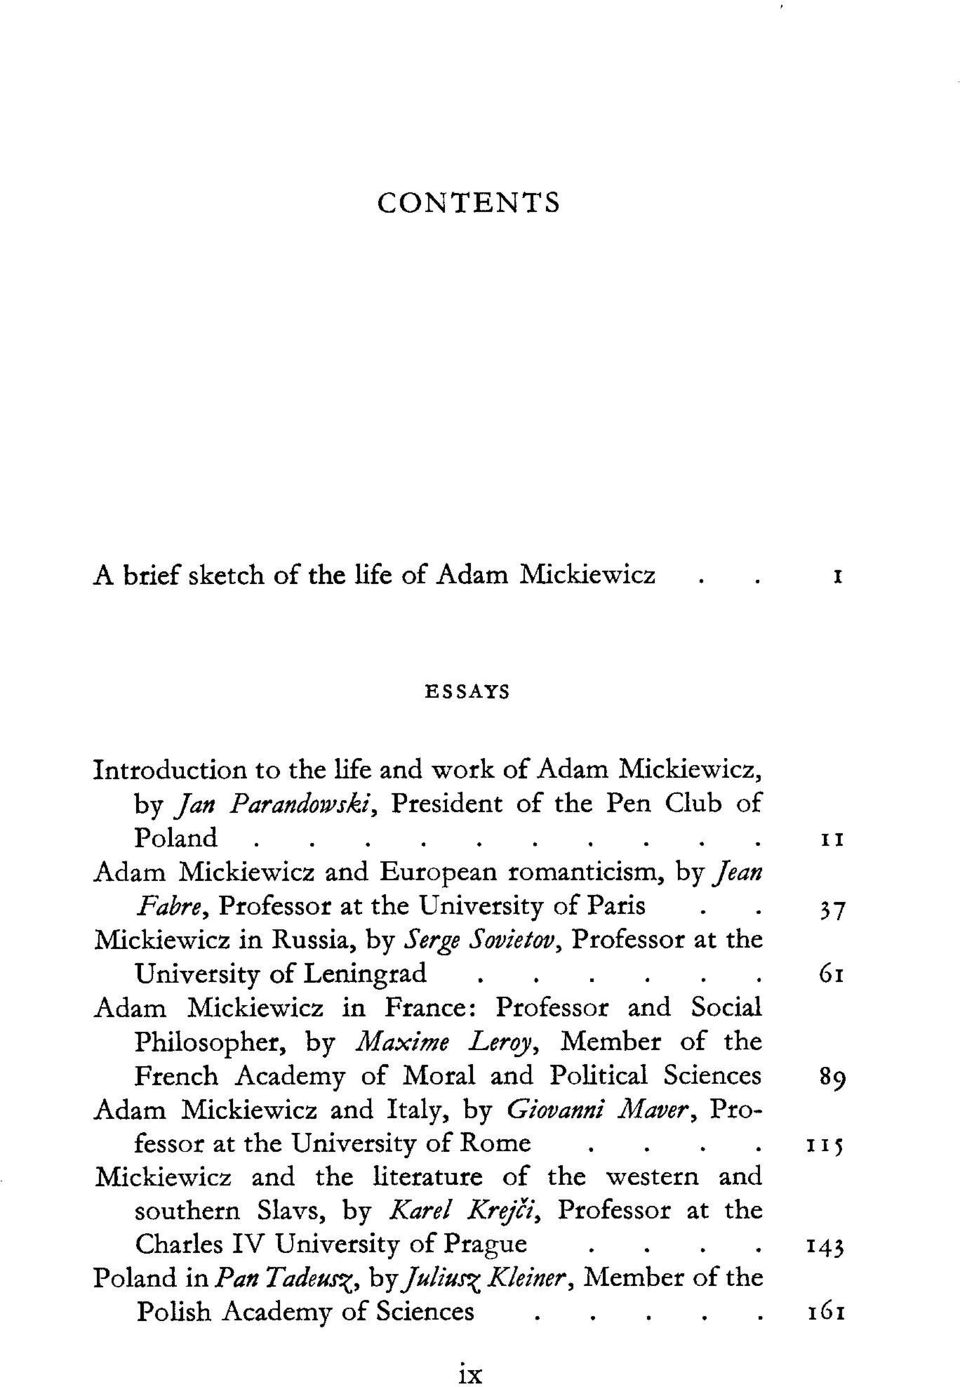 ..... 61 Adam Mickiewicz in France: Professor and Social Philosopher, by Maxime Let-y, Member of the French Academy of Moral and Political Sciences 89 Adam Mickiewicz and Italy, by Giovanni Maver,